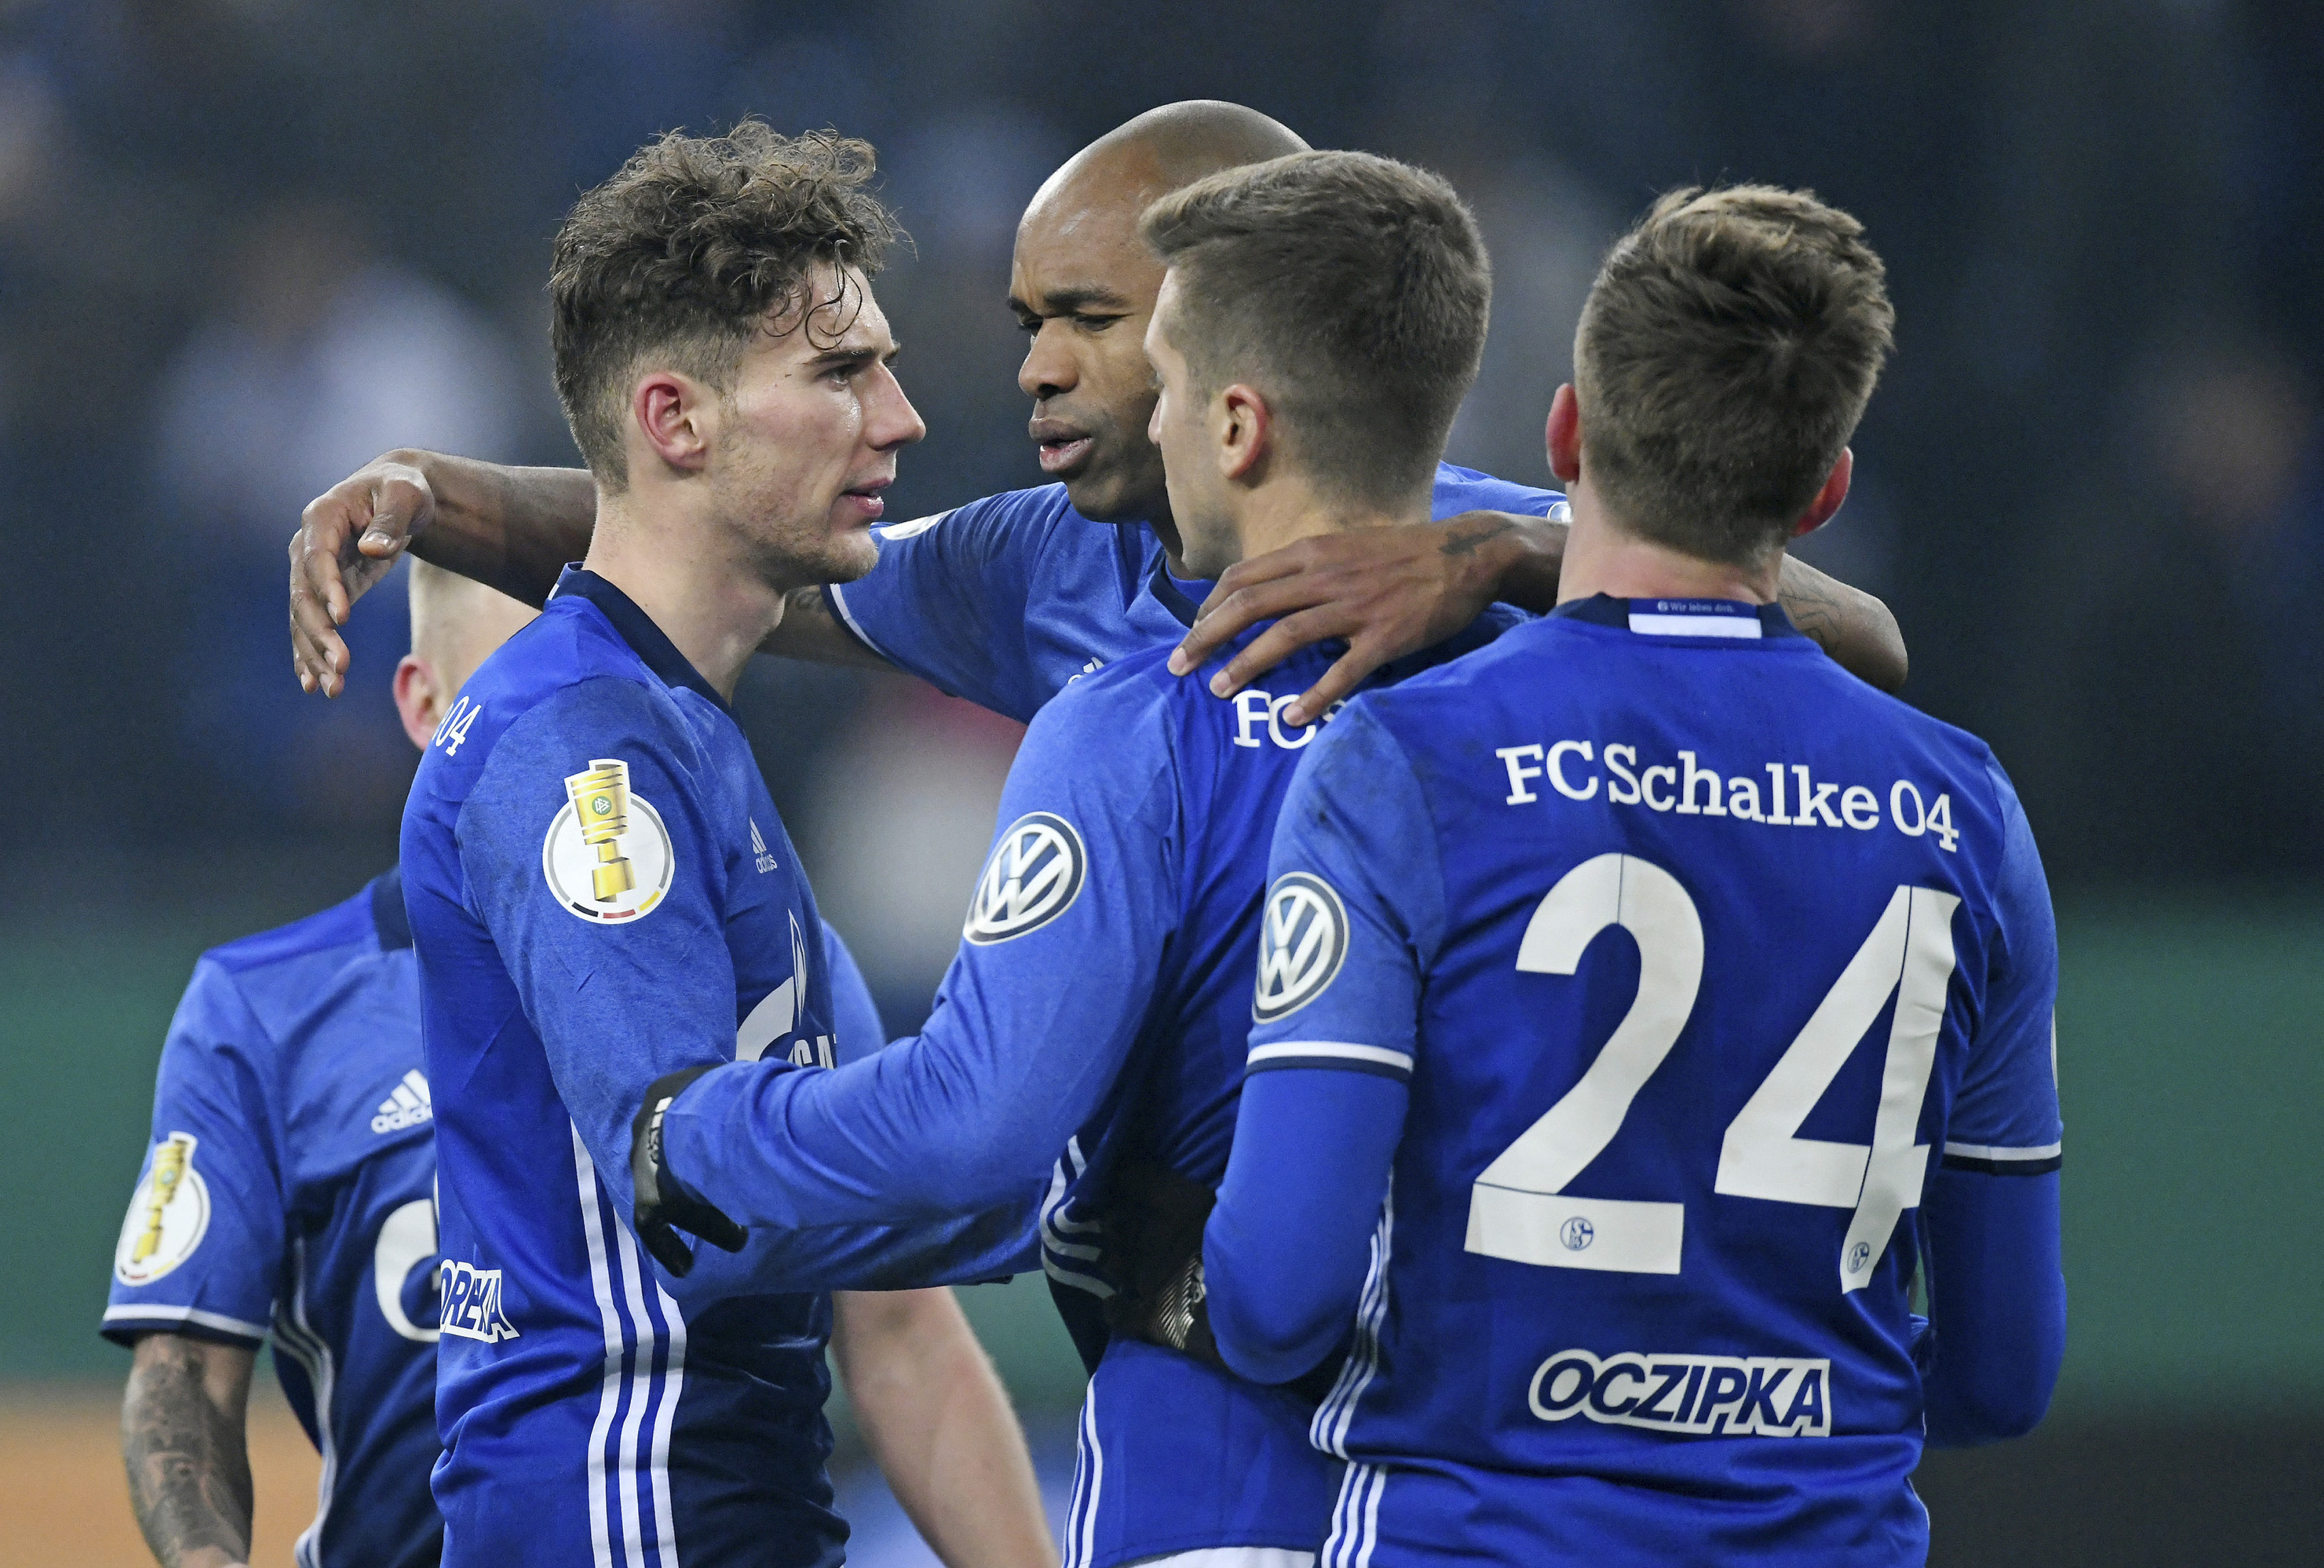 New form of Schalke 04 2017-2018 99